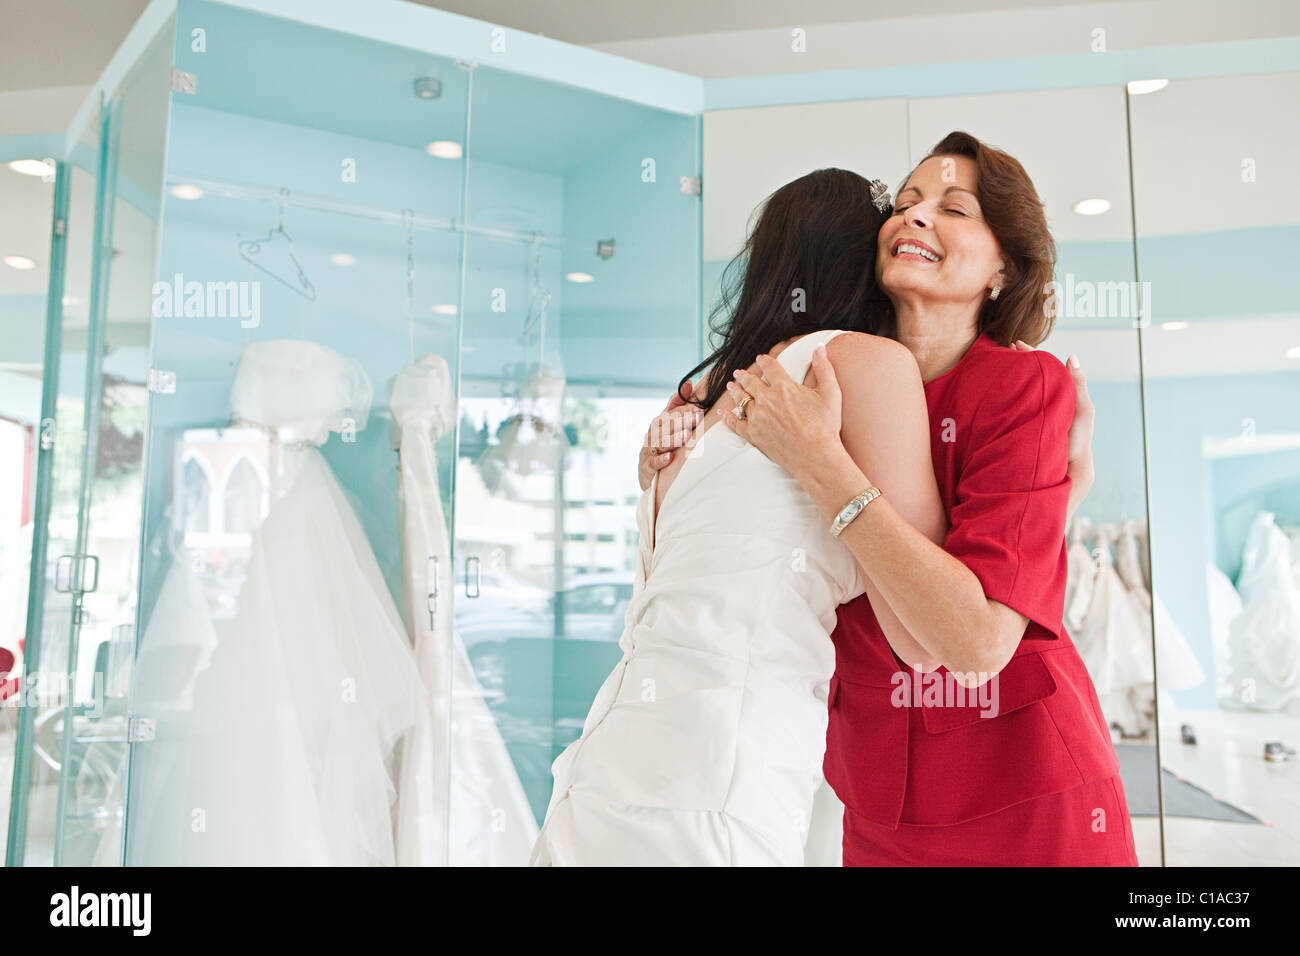 Maternity Dress Stock Photos & Maternity Dress Stock Images - Alamy